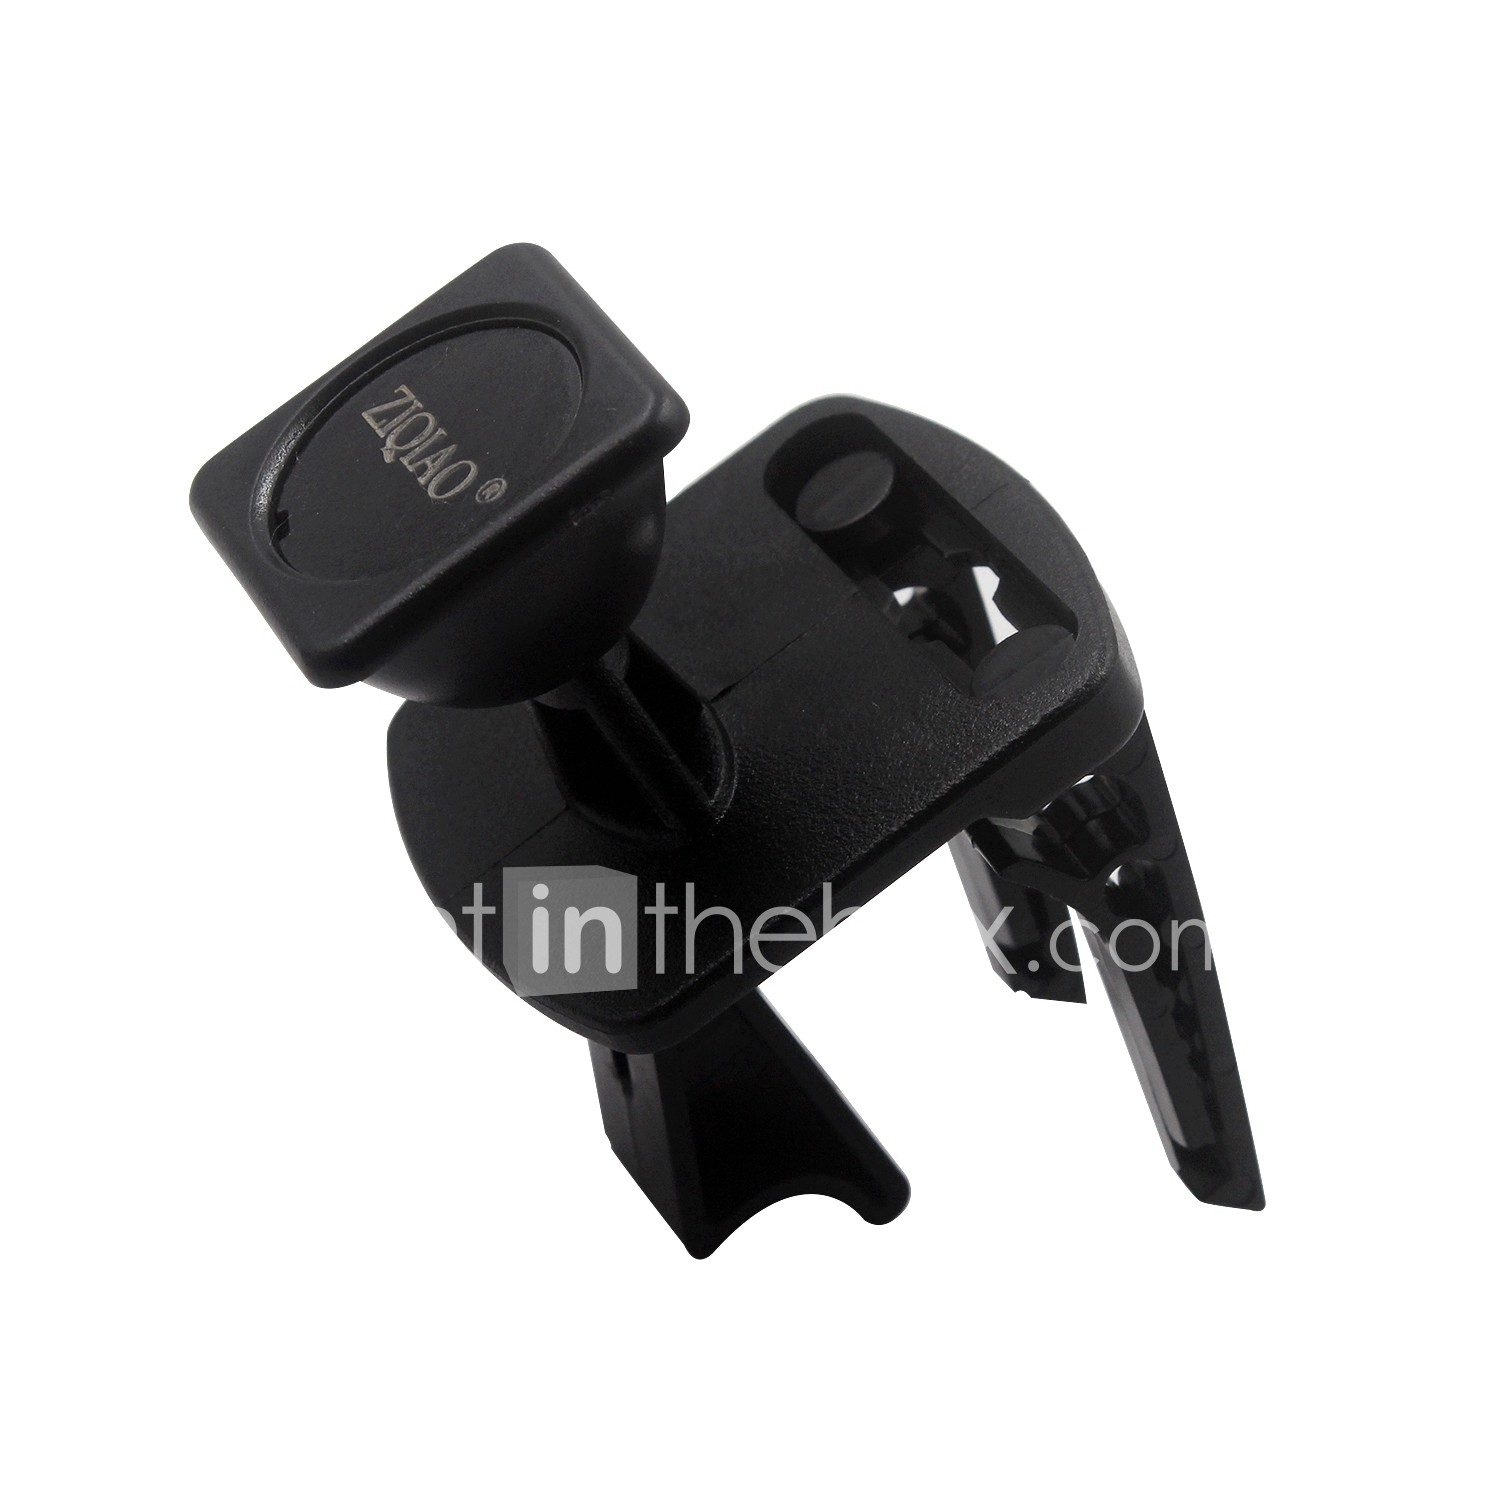 Tomtom Australia Map 915.Ziqiao Car Air Vent Gps Mount Holder For Tomtom Go 530 630t 720 730t